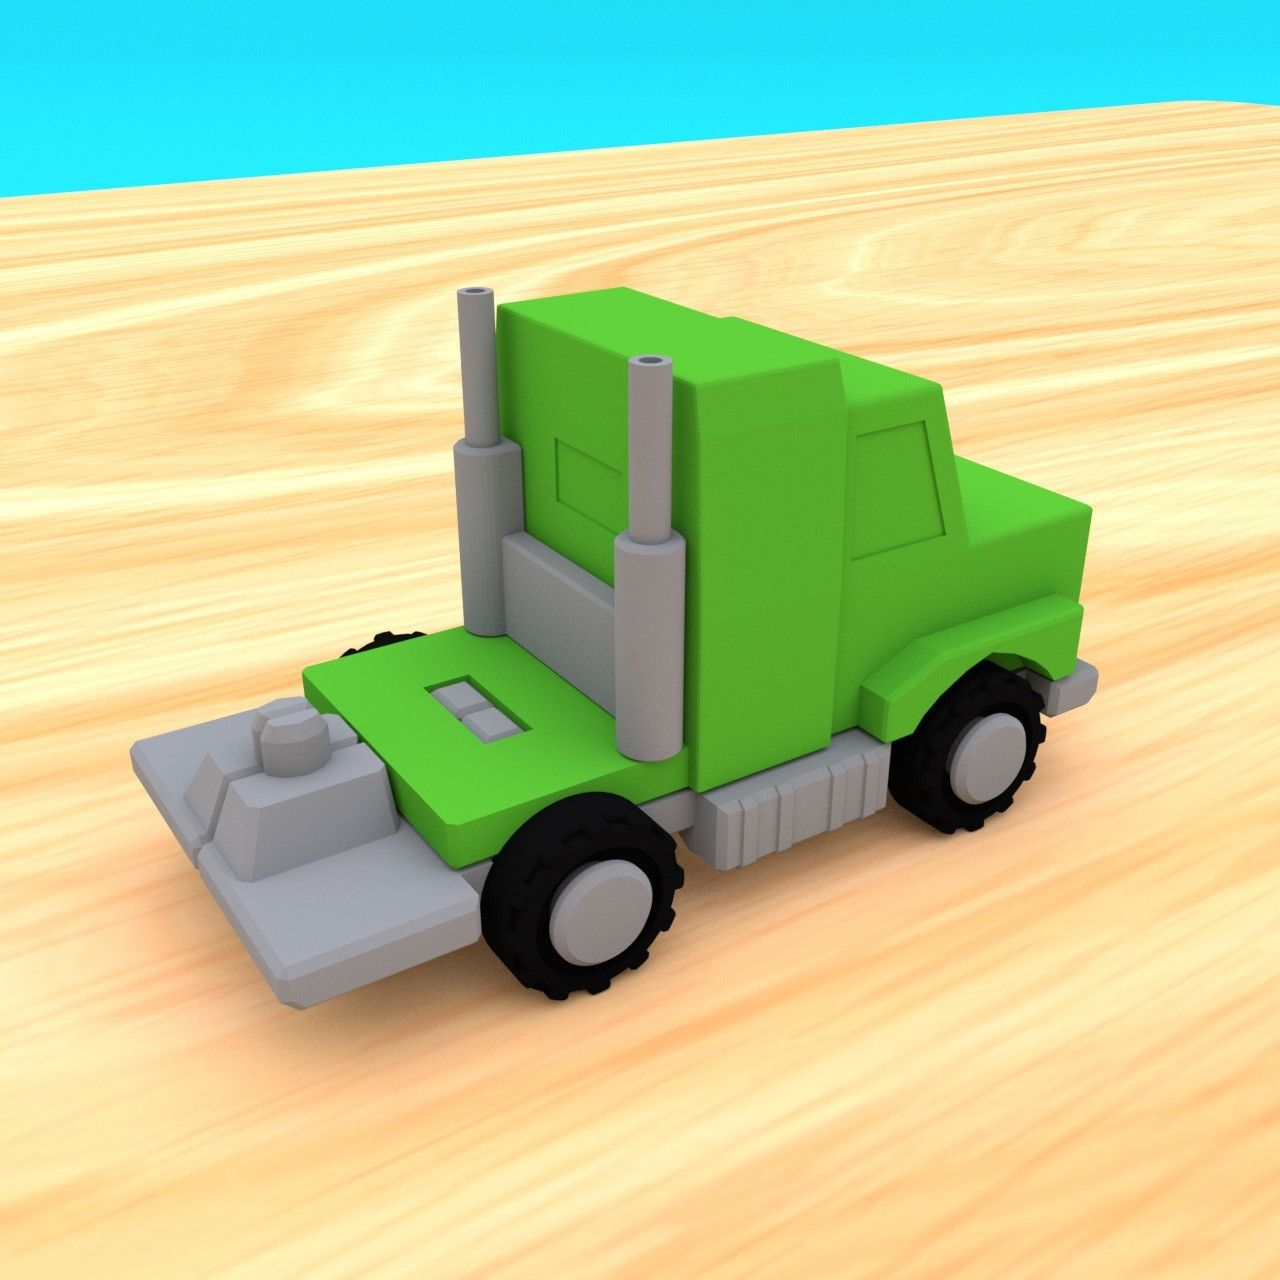 SmallToys-AmericanTruck02.jpg Download STL file SmallToys - American Truck and Freight Trailer • 3D printing object, Wabby